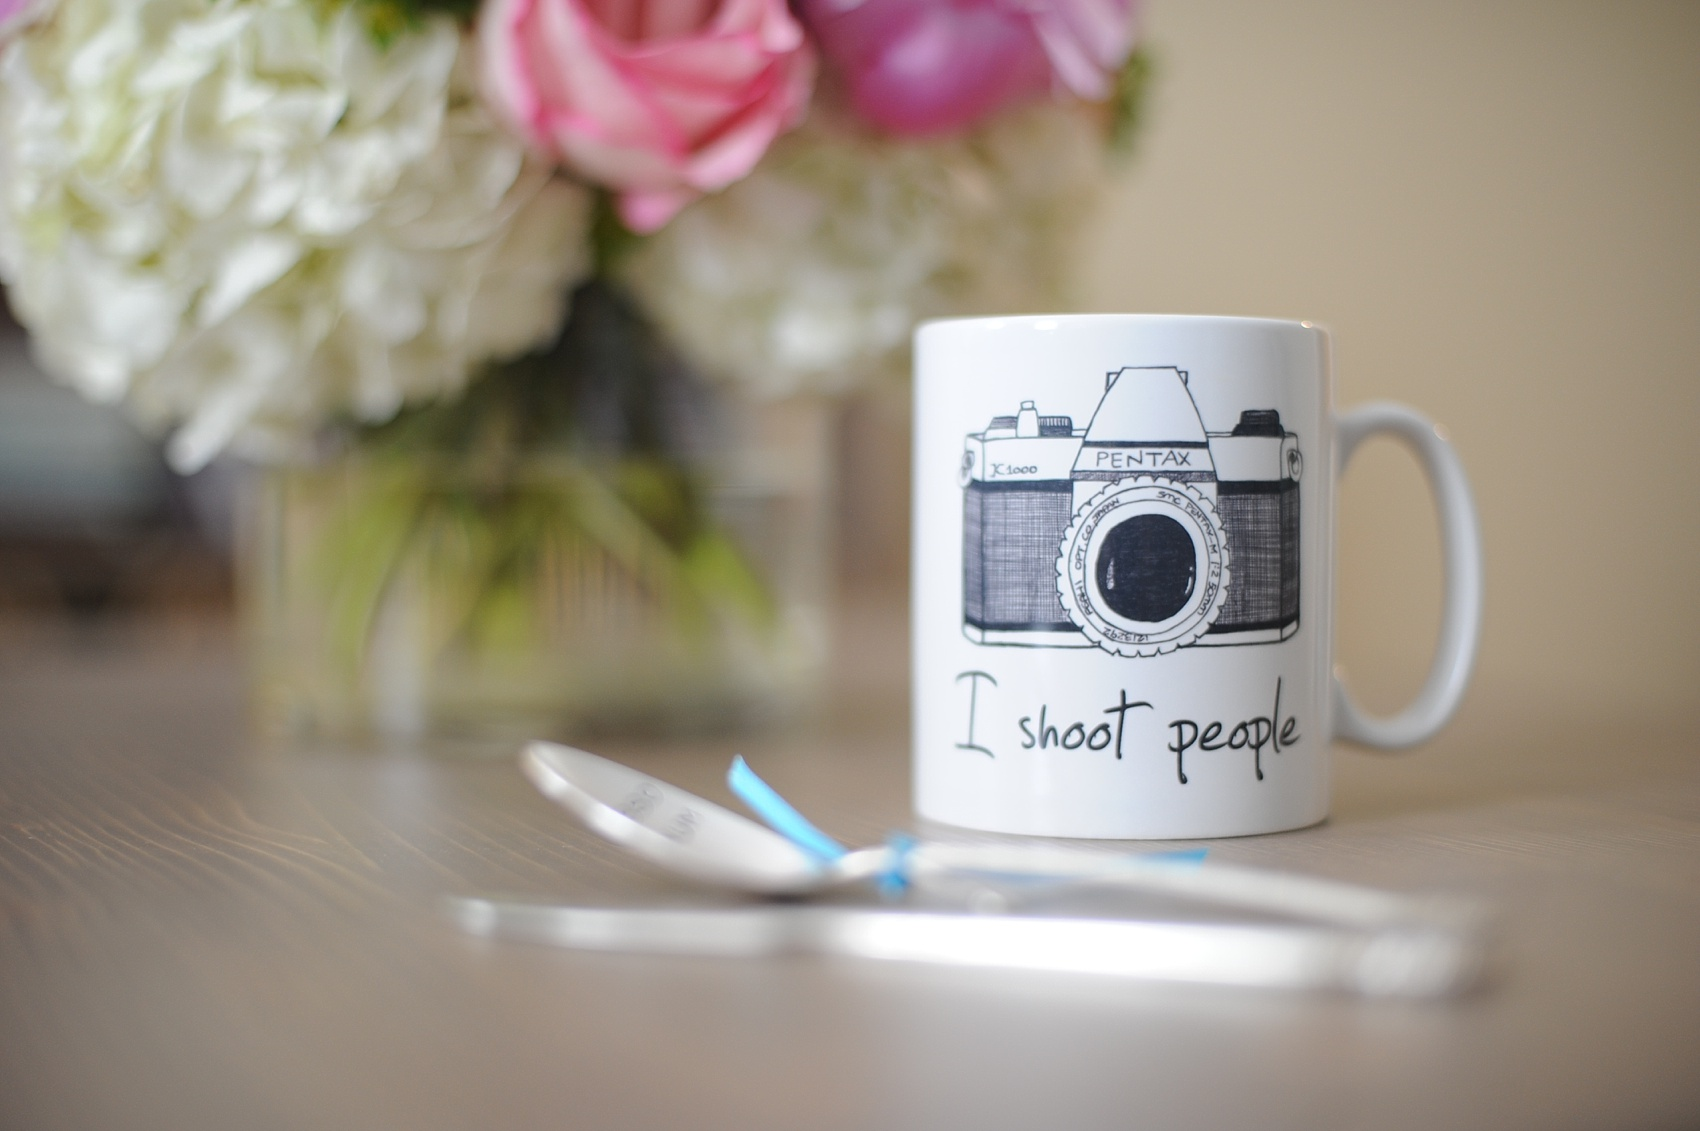 photographer gifts i shoot people mug and stamped flatware